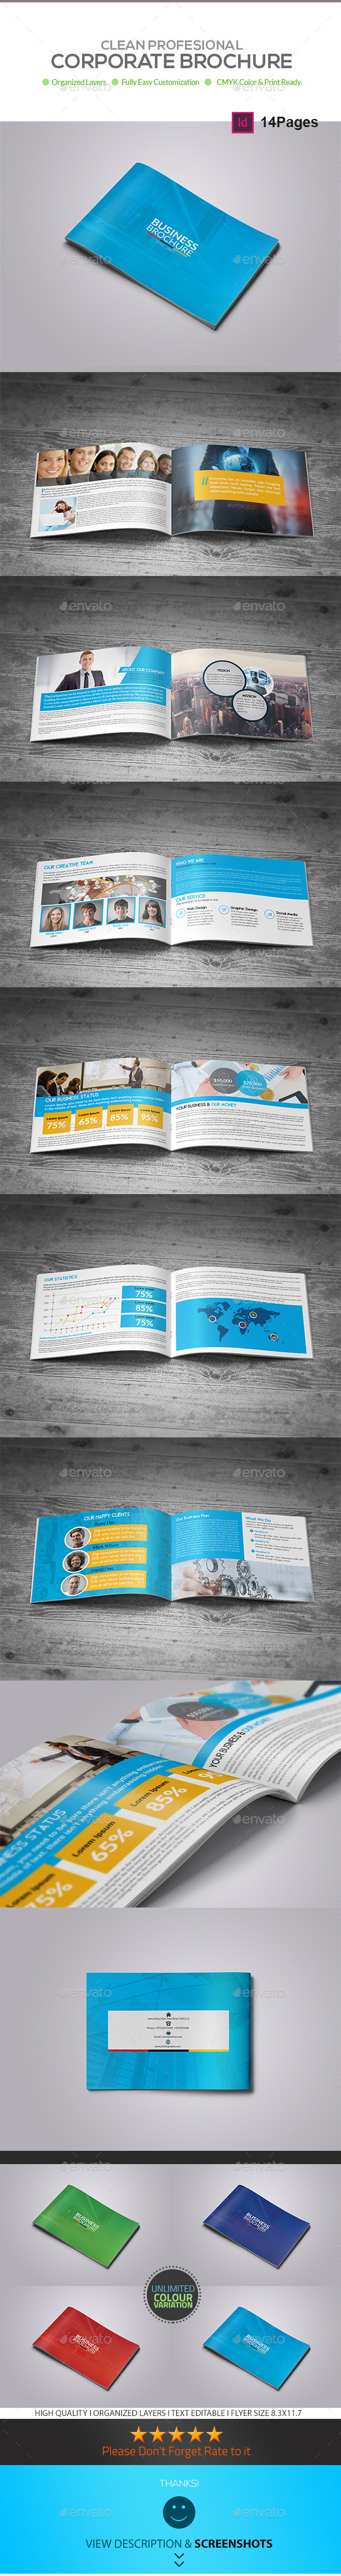 Business Brochure Template 14 Pages - Corporate Brochures